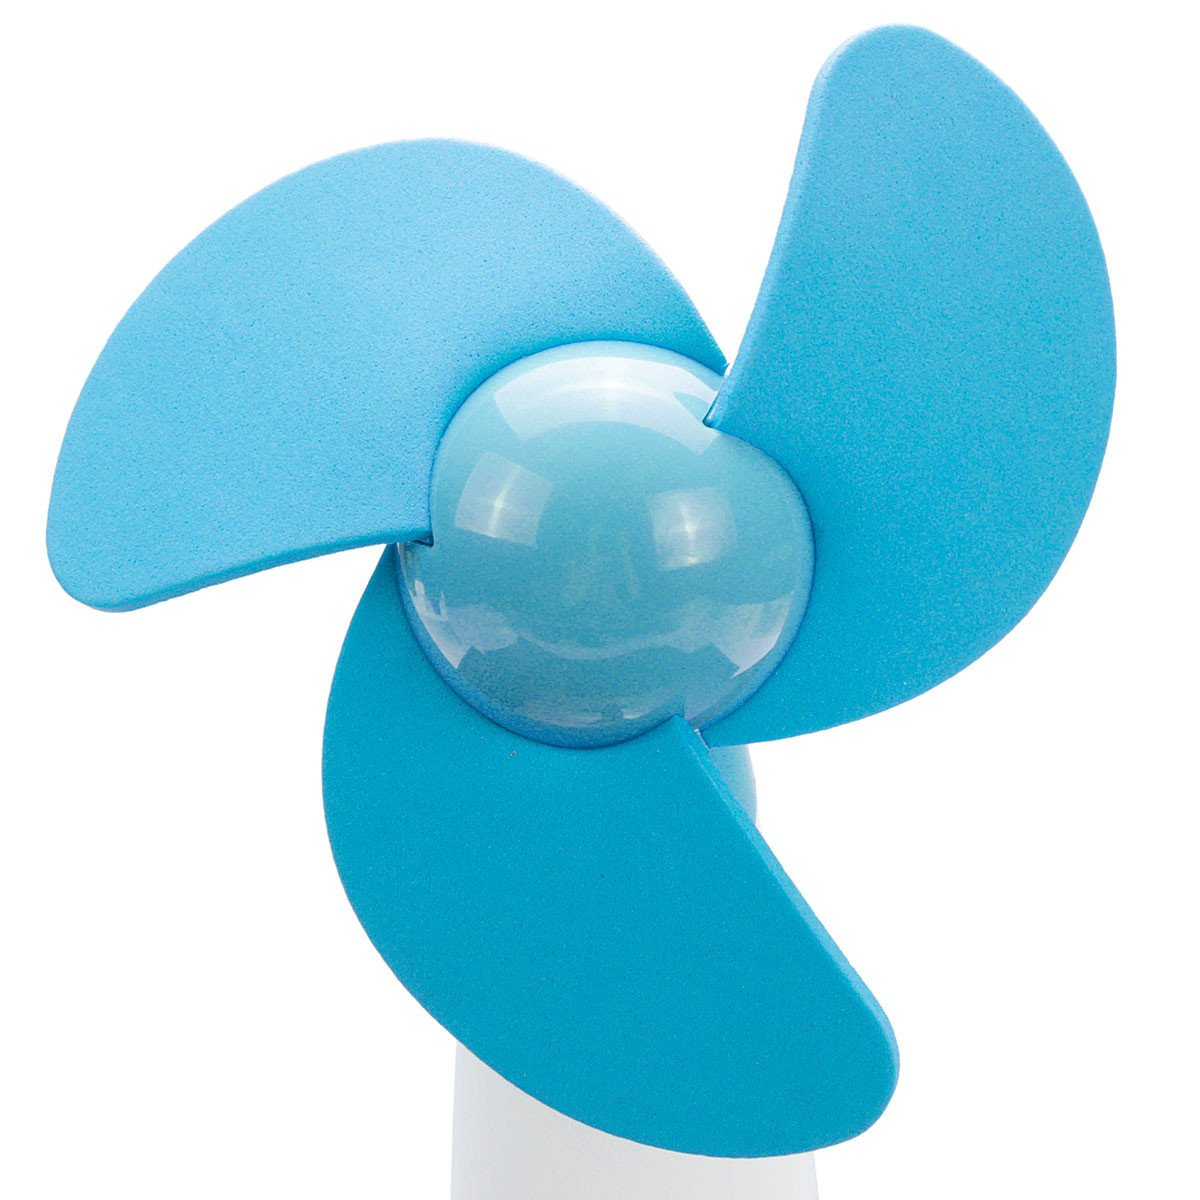 SAFETYON Handheld Ventilator Mini Standventilator Super Mute Fan Personal Portable Electric Cooling Fan for Home and Travel Battery Operated blue